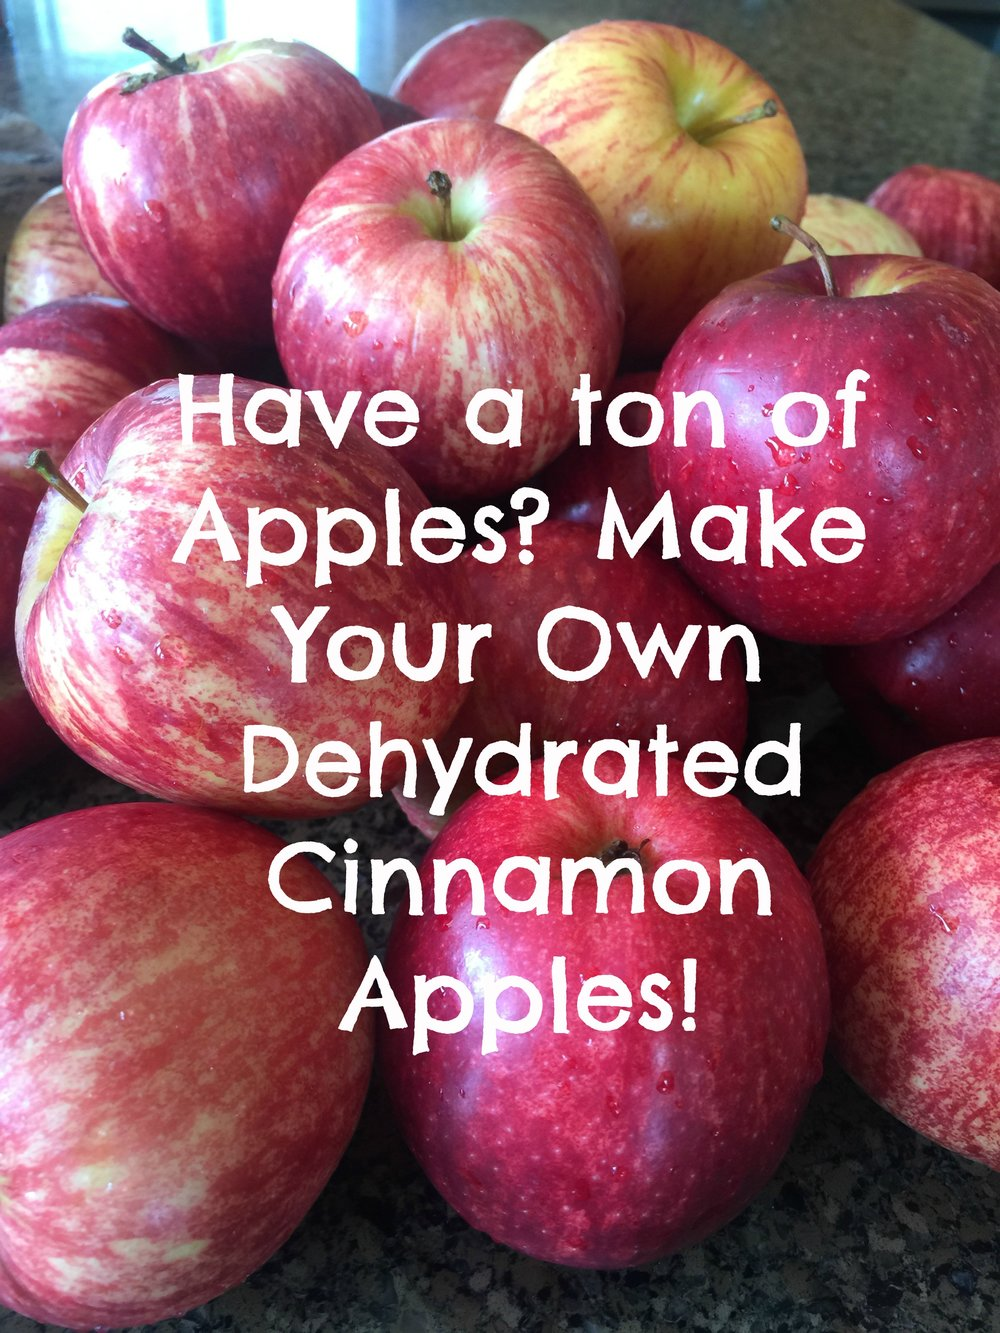 Find out how to make dried plain or cinnamon apples!